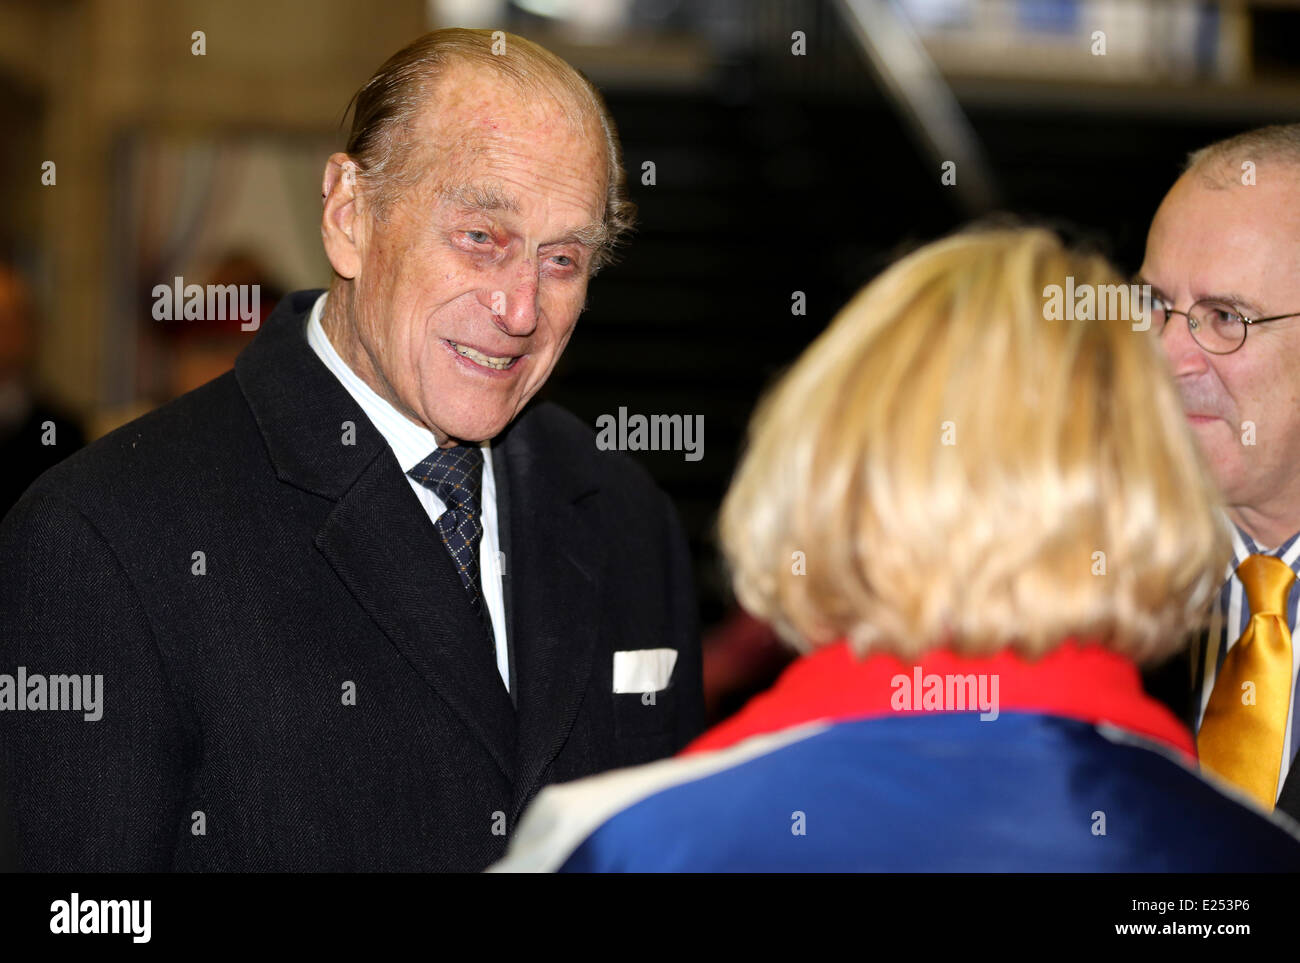 Members of the Royal Family visit Baker Street tube station to mark the 150th anniversary of the London Underground - Stock Image